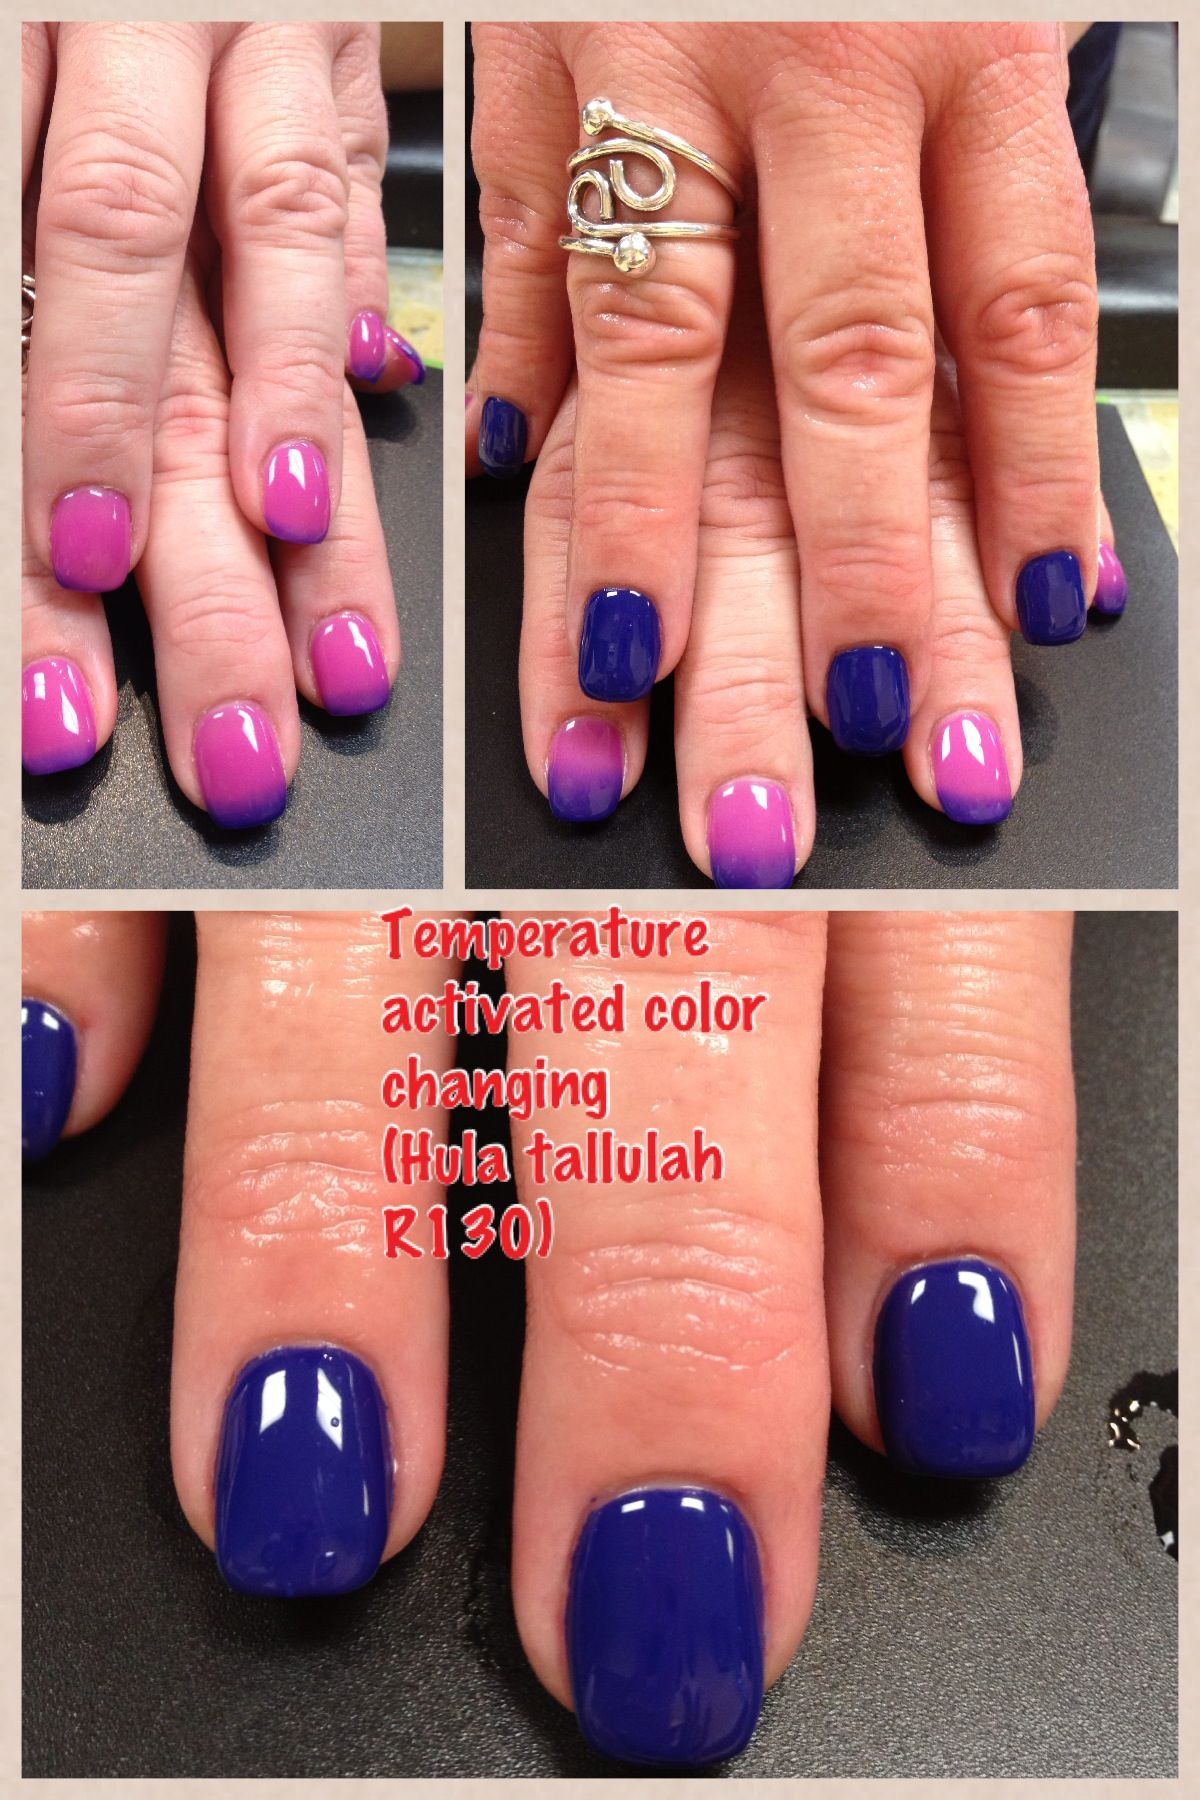 Manicure With Gel Ii Colour Mood Changing Nails How To Do Nails Hot Nails